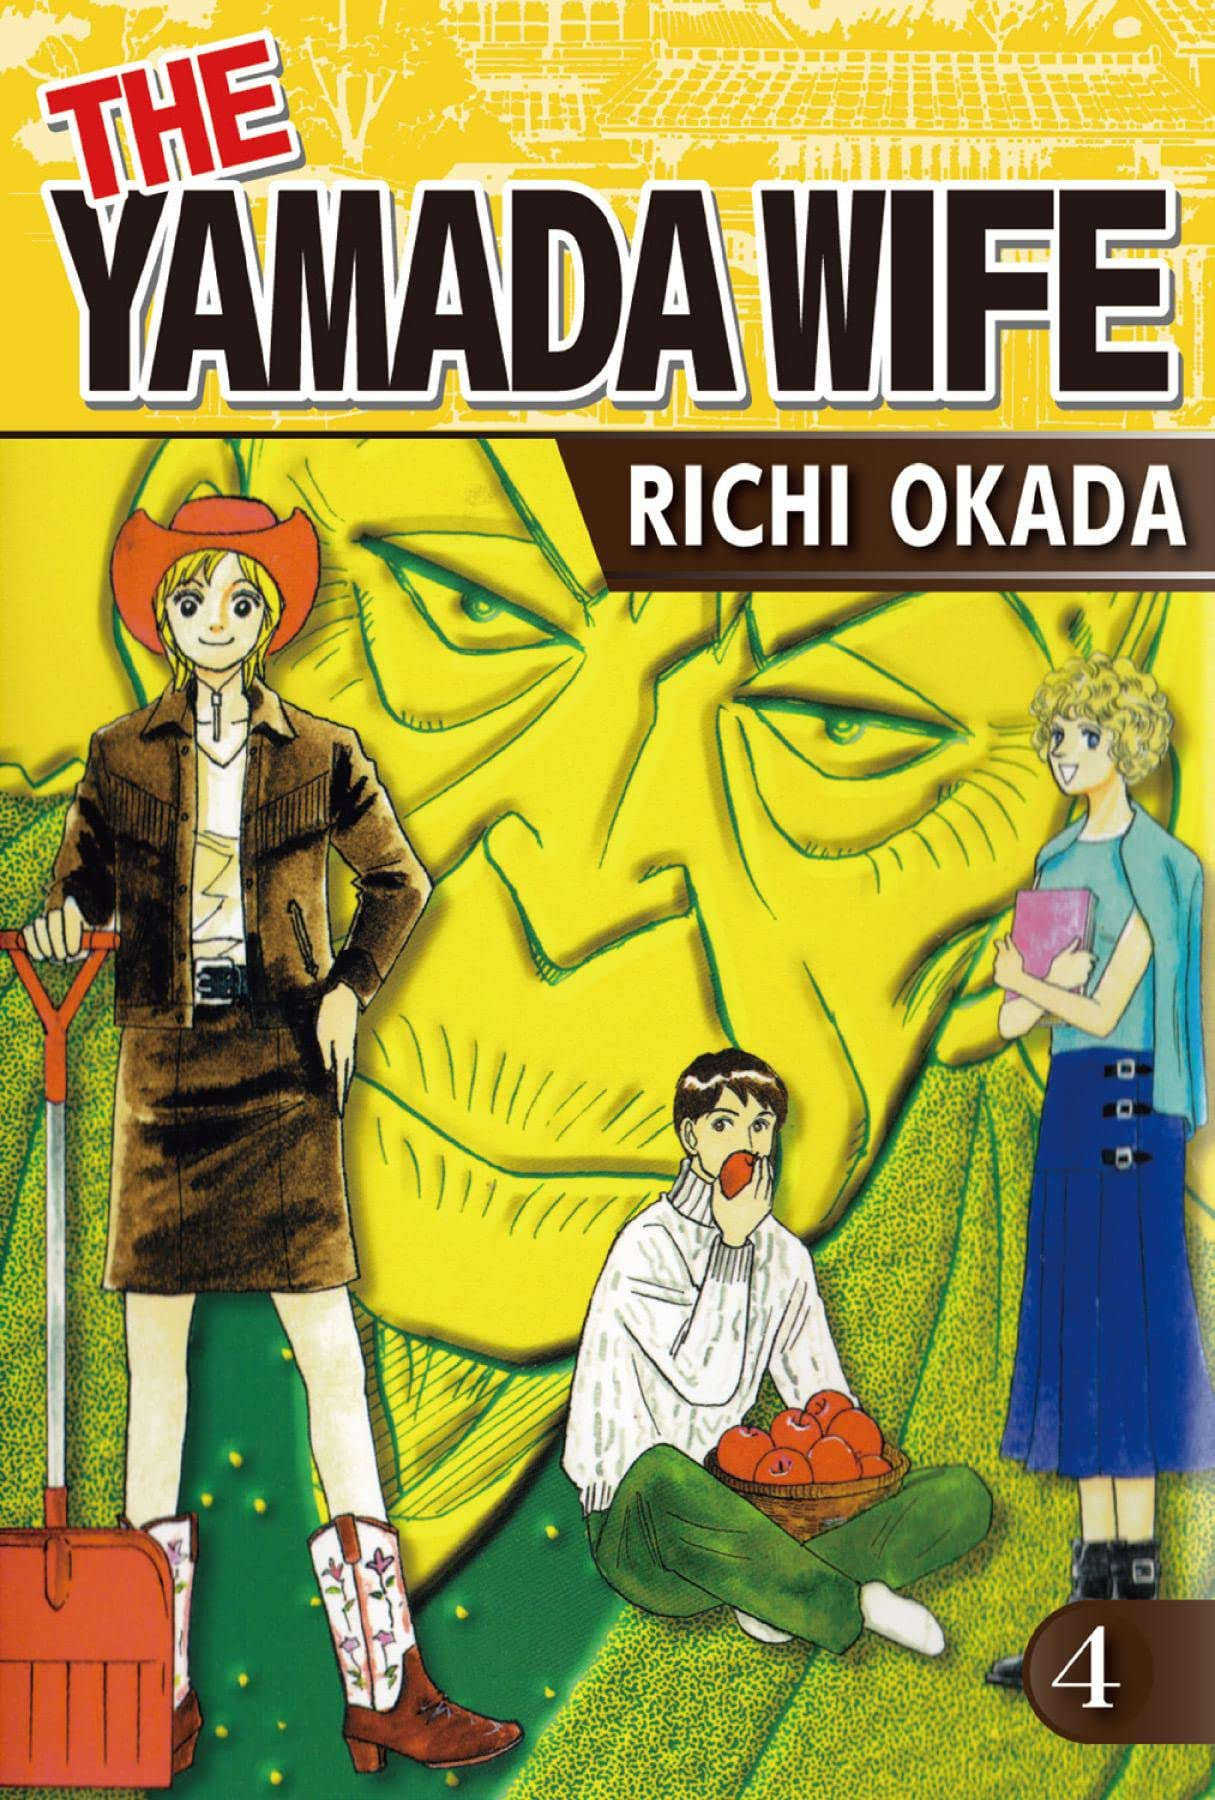 THE YAMADA WIFE Vol. 4